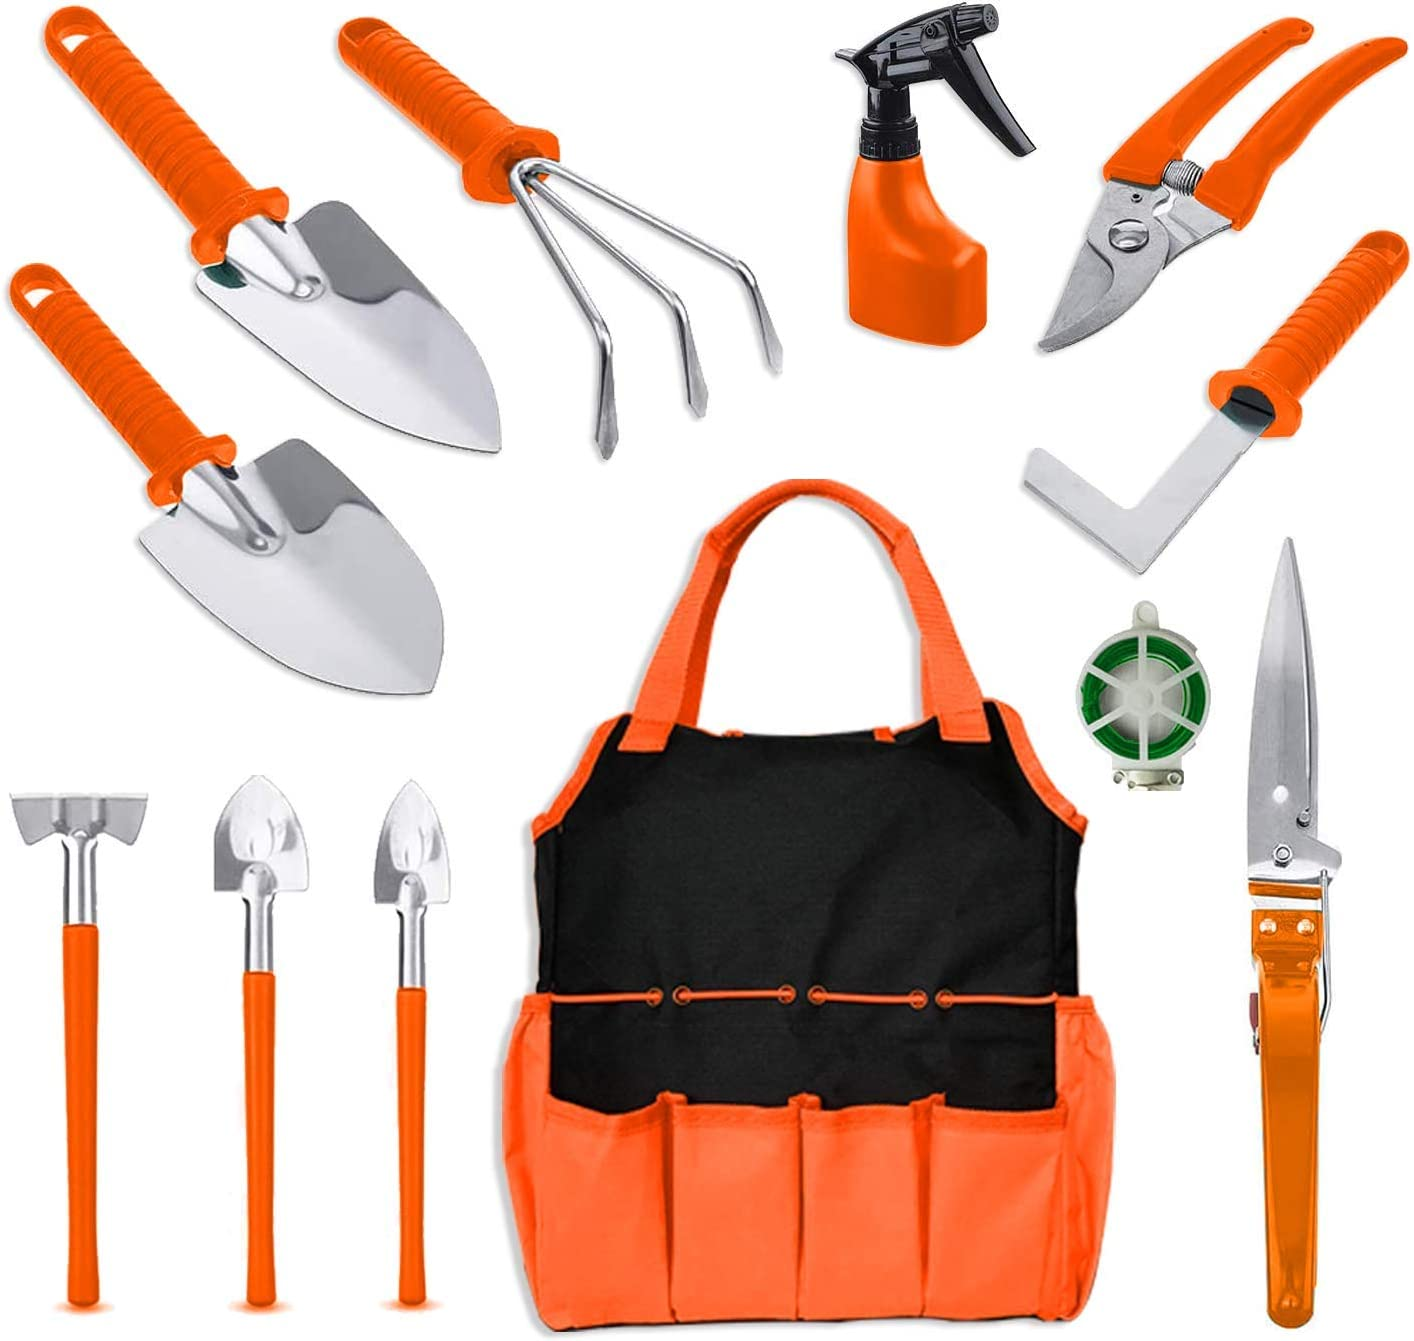 BNCHI 12 Pieces Stainless Steel Gardening Tools Set, Gardening Gifts for Women,Men,Gardener (Orange)